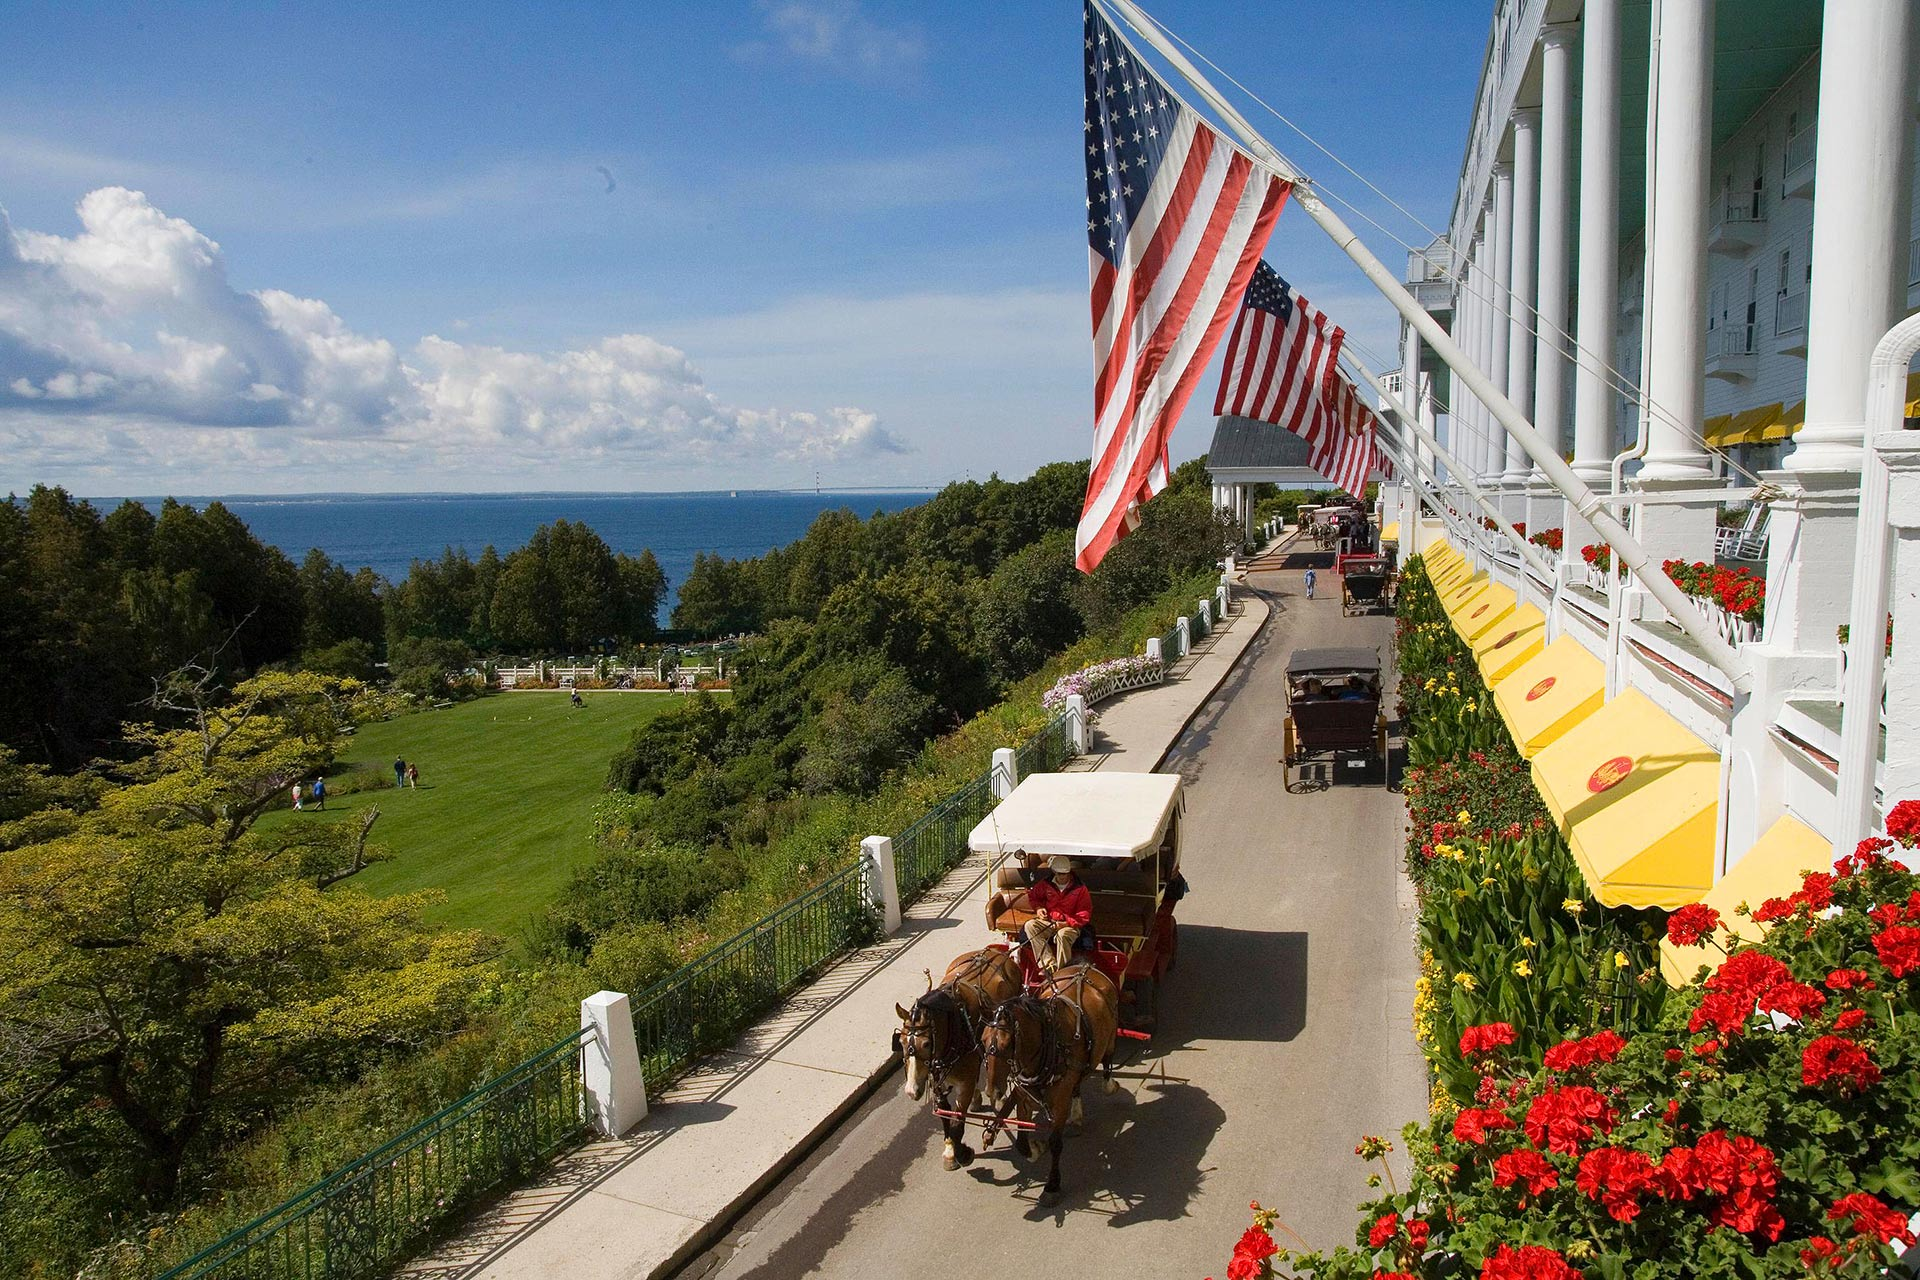 The Grand Hotel on Mackinac Island, Michigan